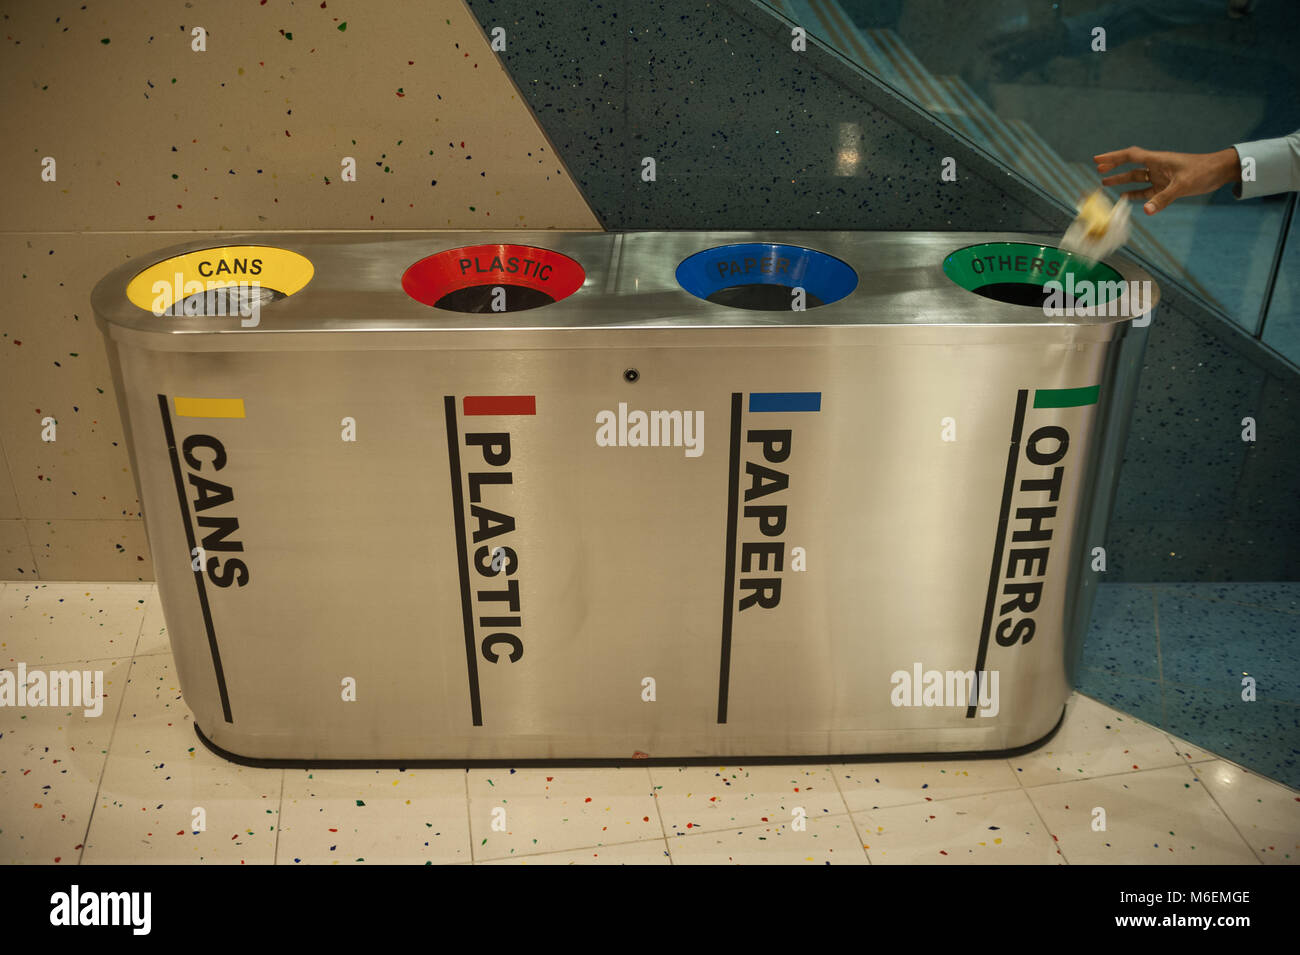 21.12.2017, Singapore, Republic of Singapore, Asia - Rubbish bins for waste separation and recycling are seen at - Stock Image